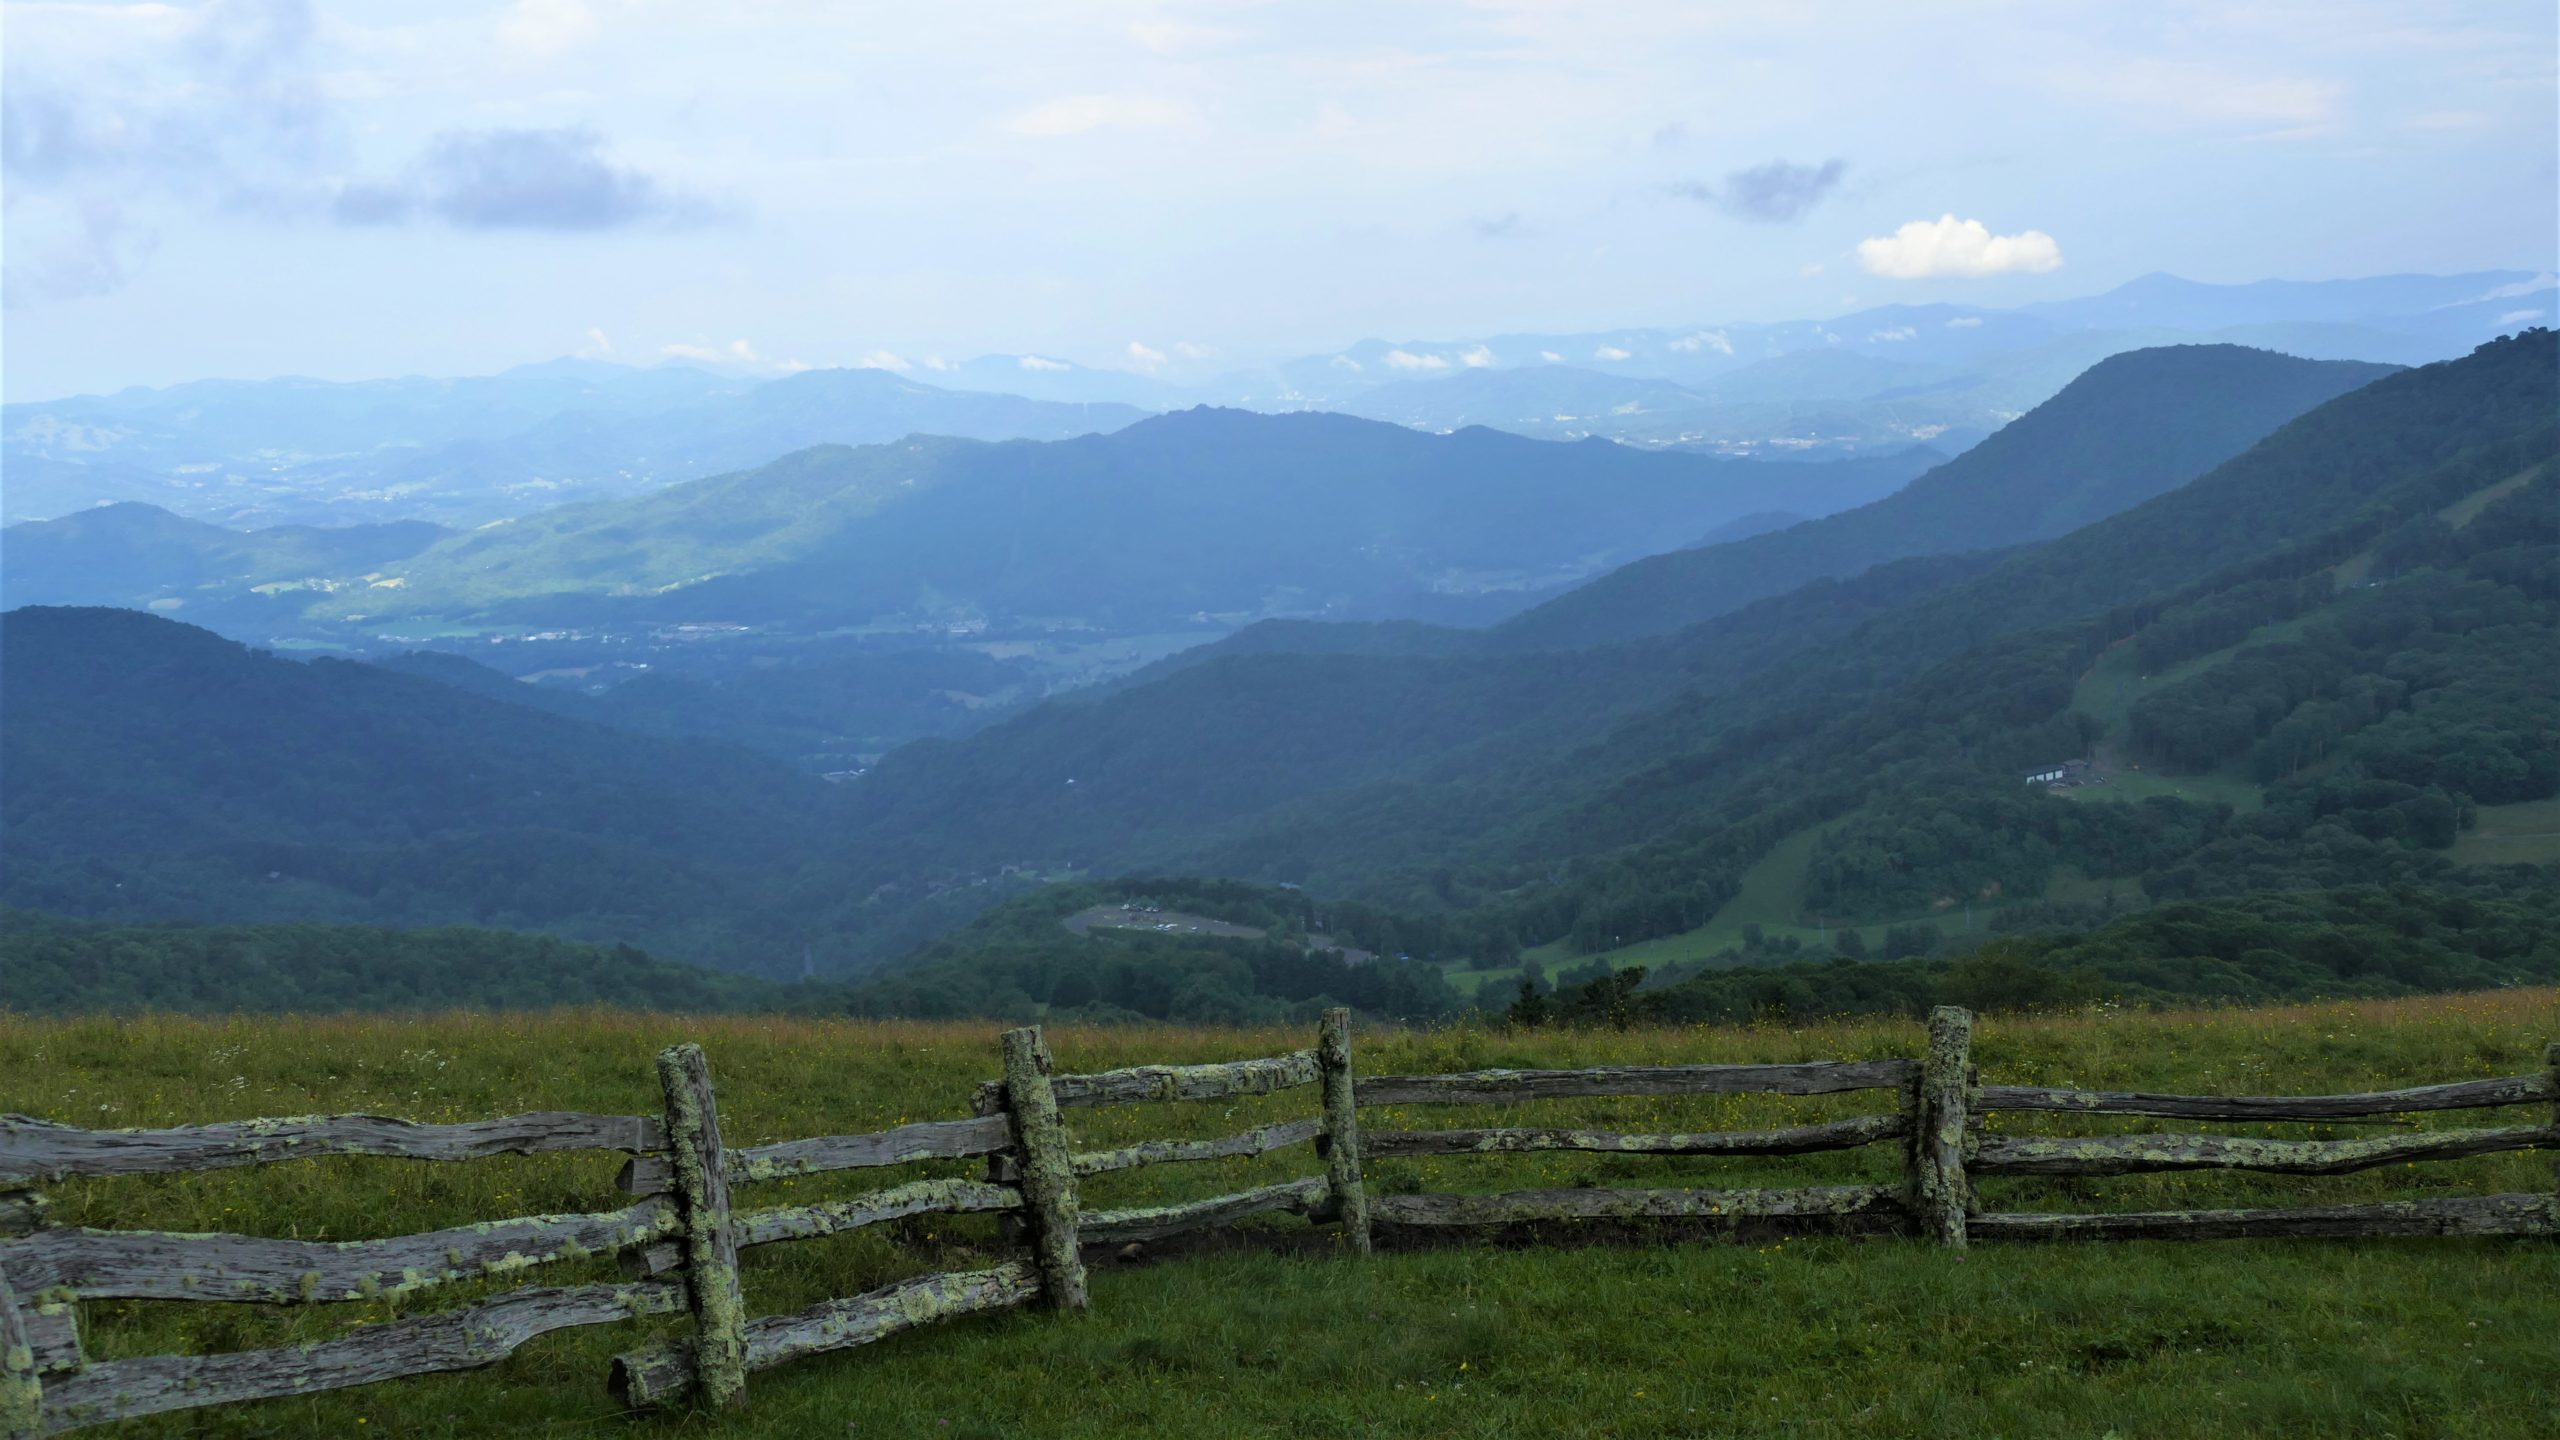 Panormaic view of mountains and split rail fence seen from Hemphill Bald